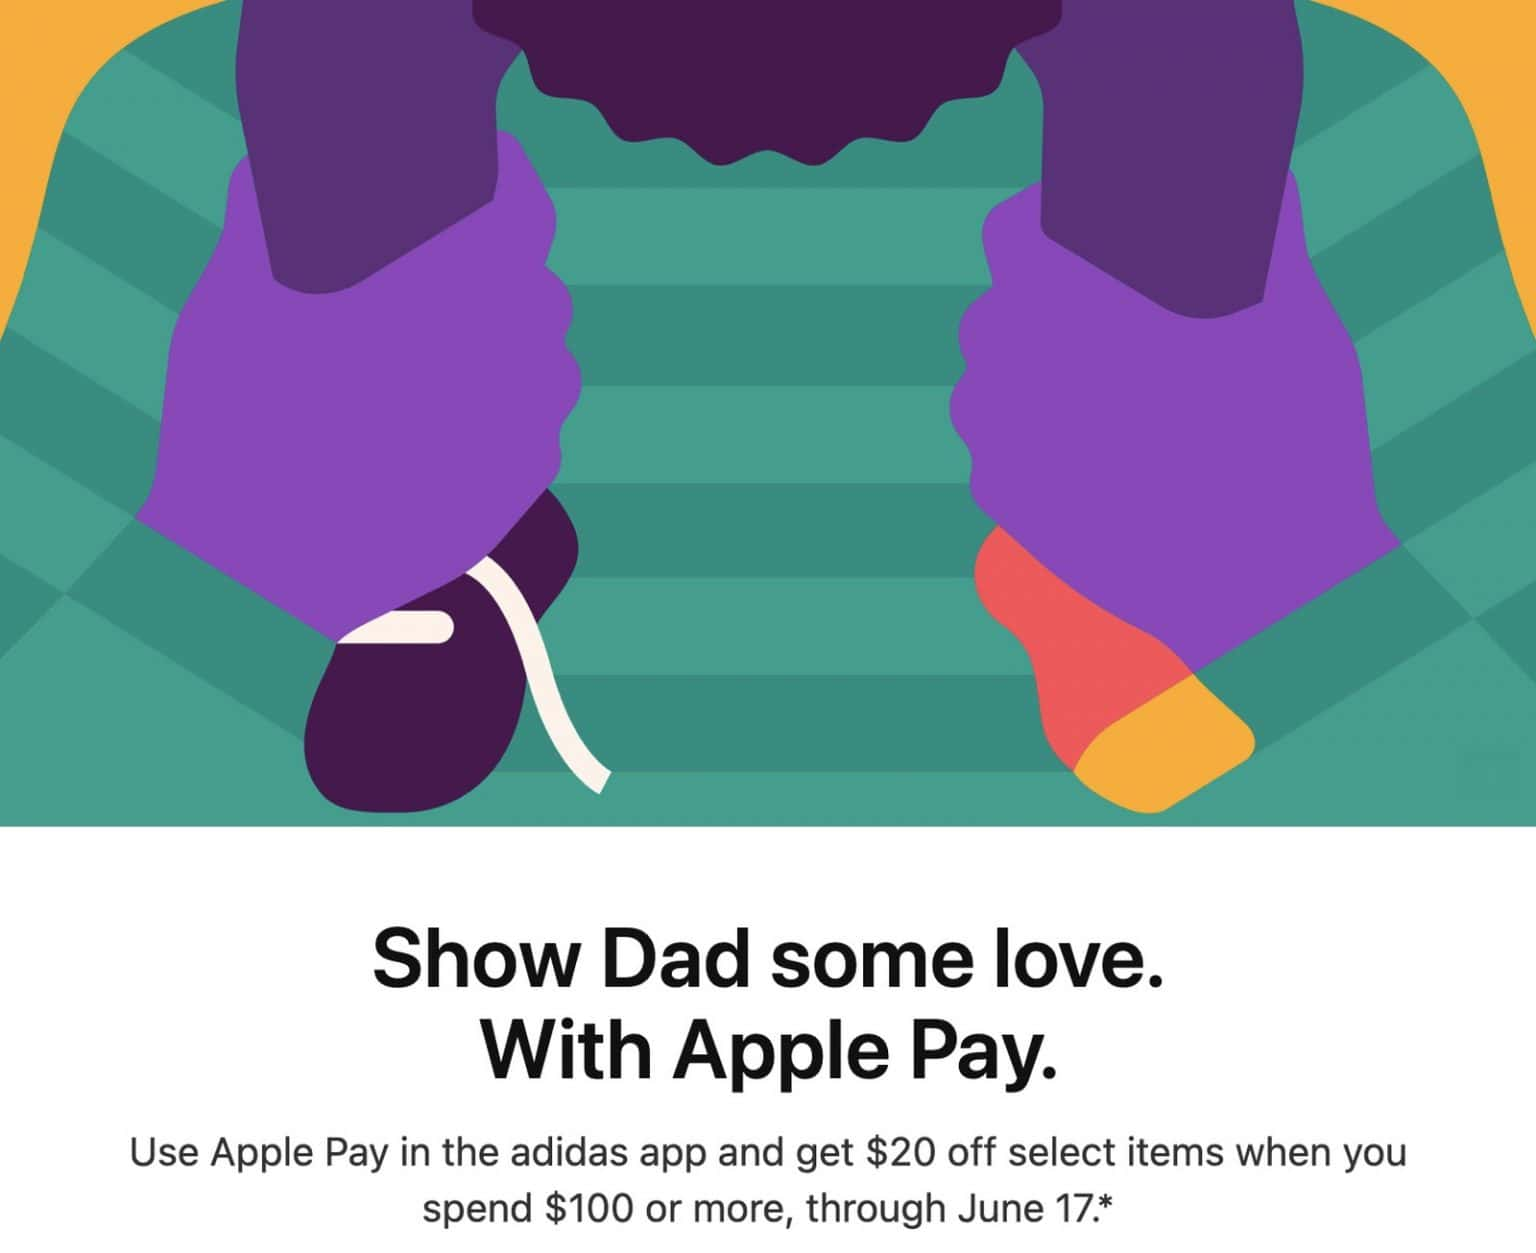 Apple Pay promo with Adidas